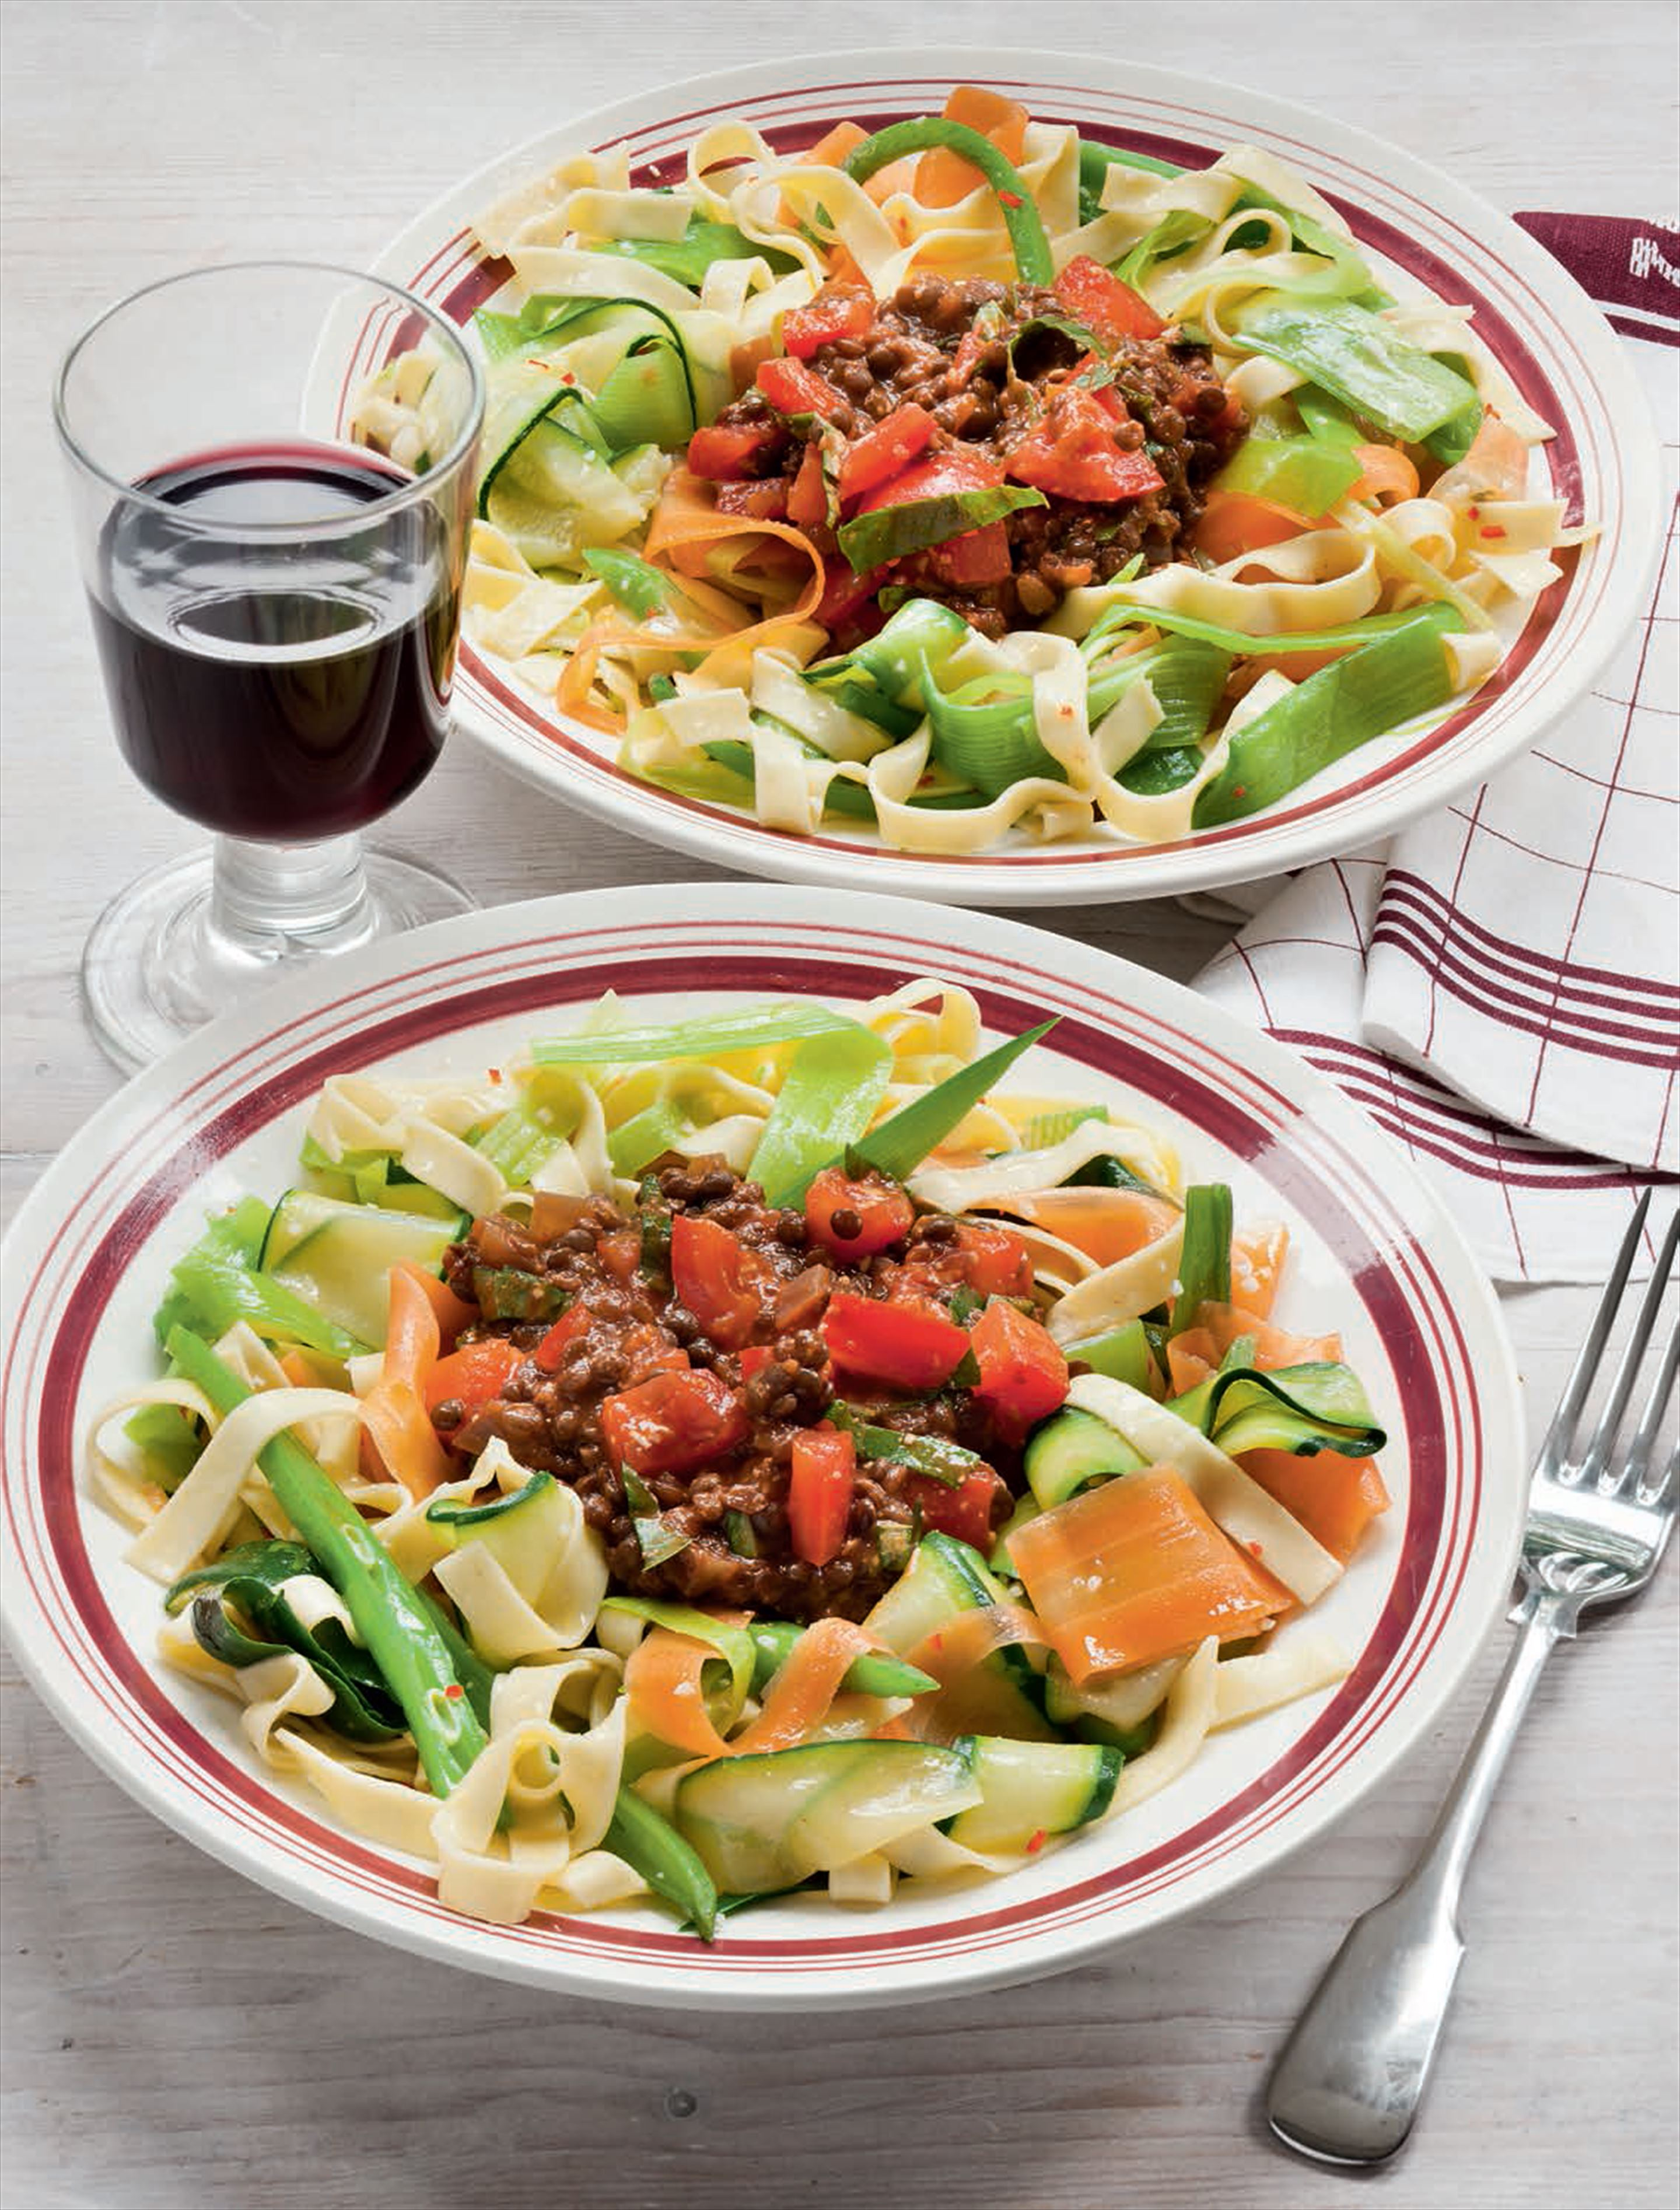 Pasta & vegetables with lentil 'bolognaise'